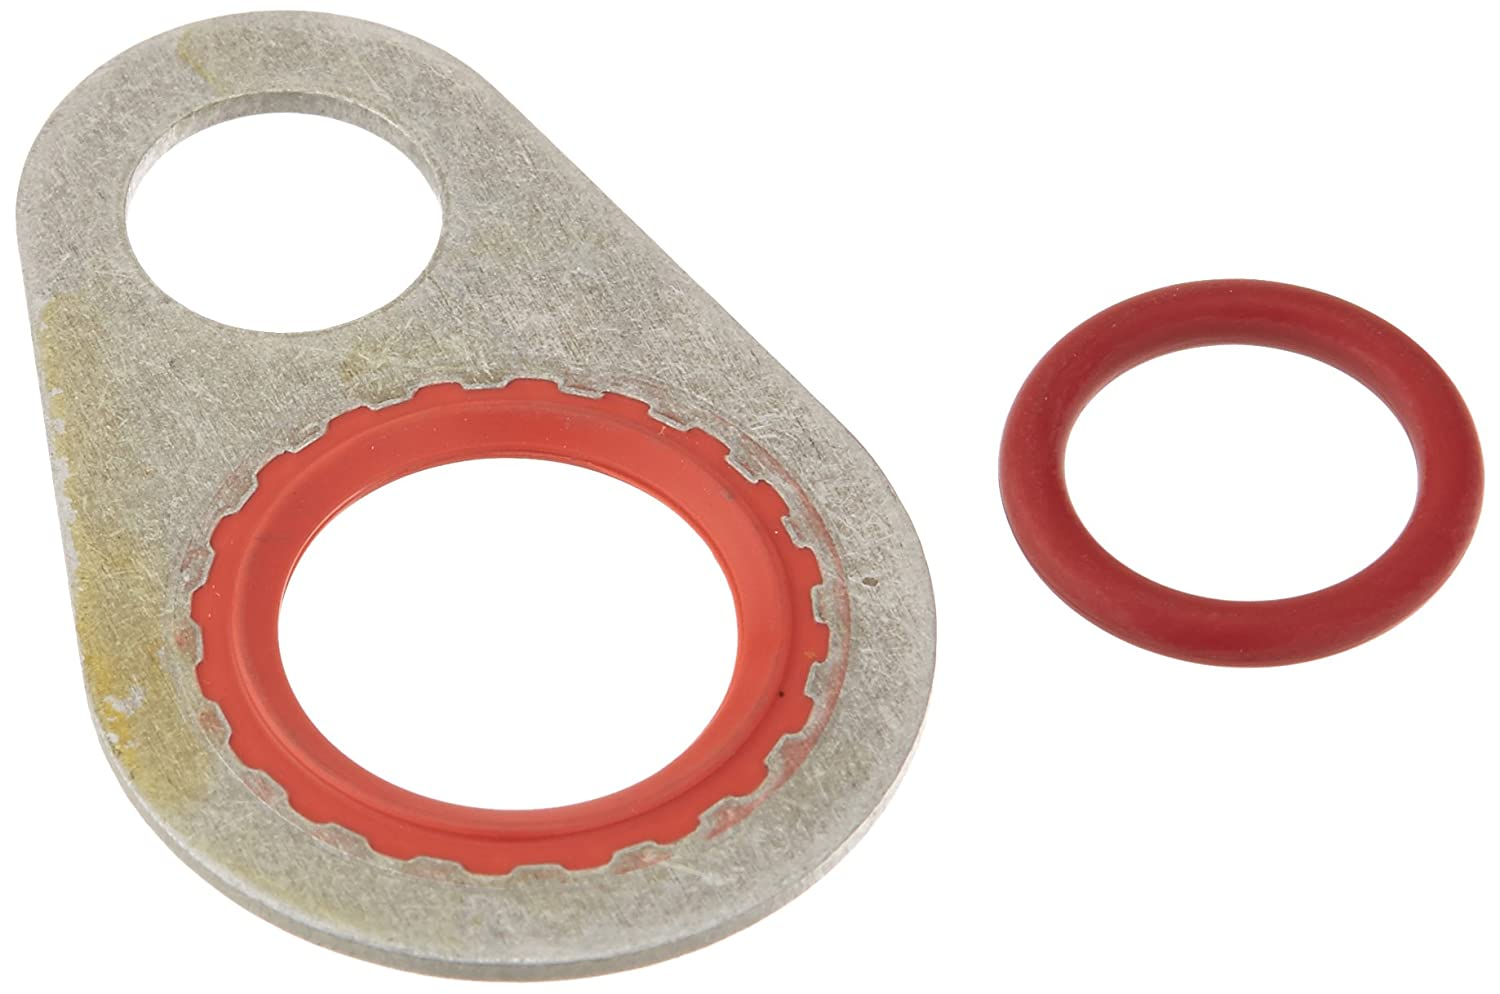 Motorcraft YF-3534 O-Ring Kit